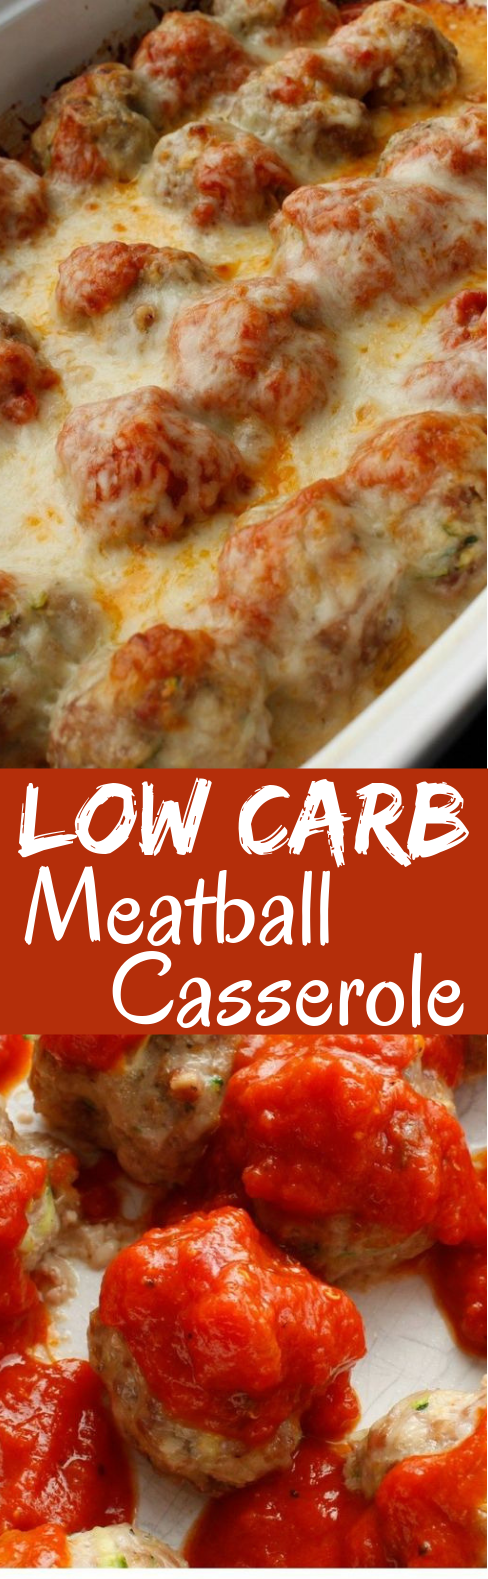 Low Carb Meatball Casserole #lowcarb #keto